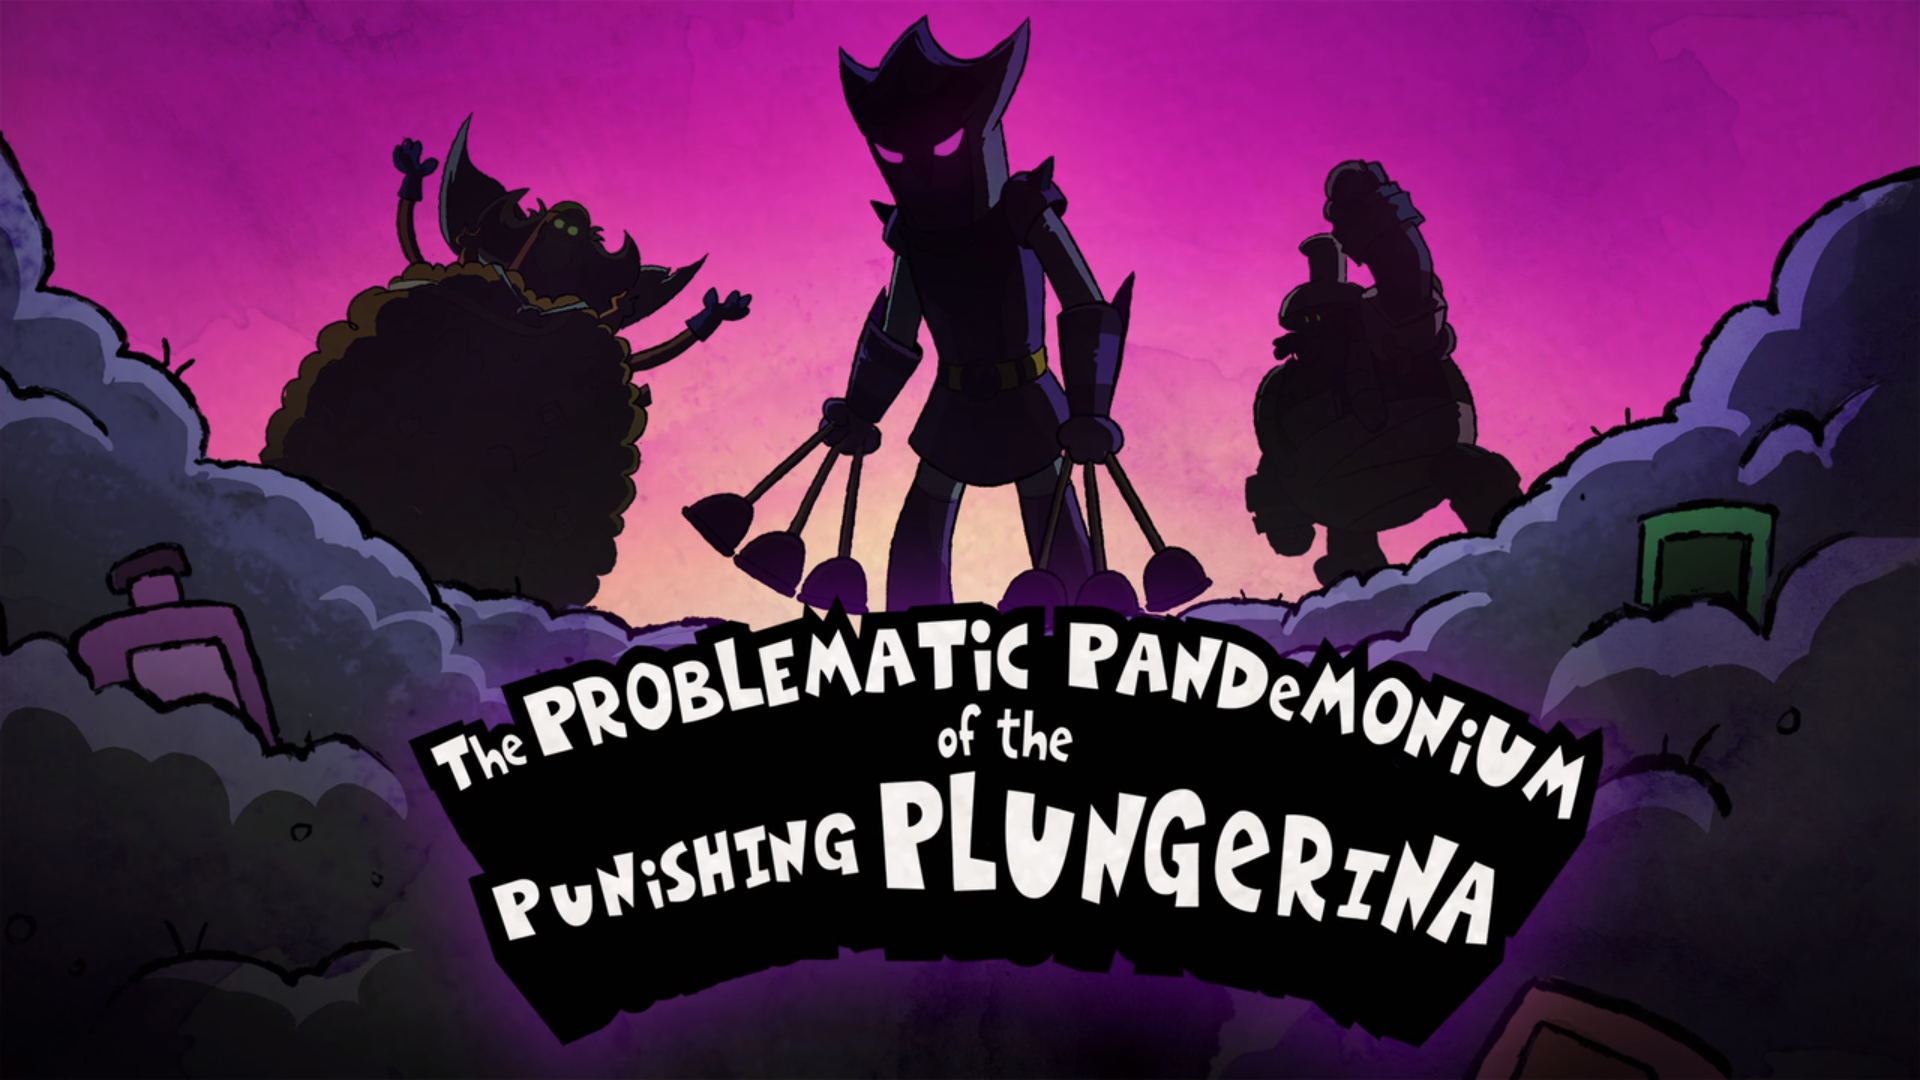 The Problematic Pandemonium of the Punishing Plungerina